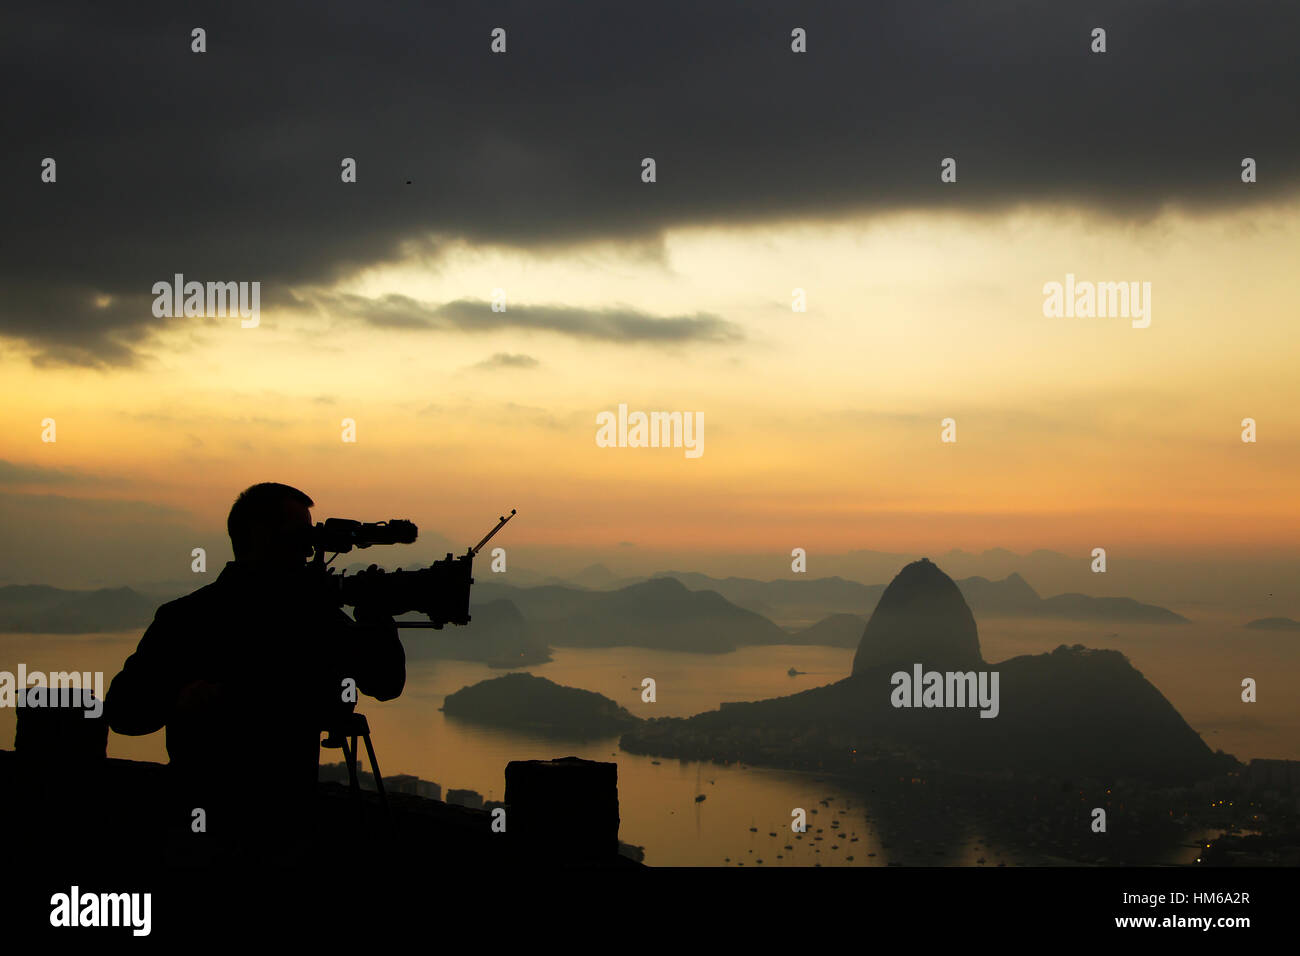 Cameramen filming the sunrise from Dona Marta Lookout with sugarloaf in the background, Rio de Janeiro, Brazil - Stock Image